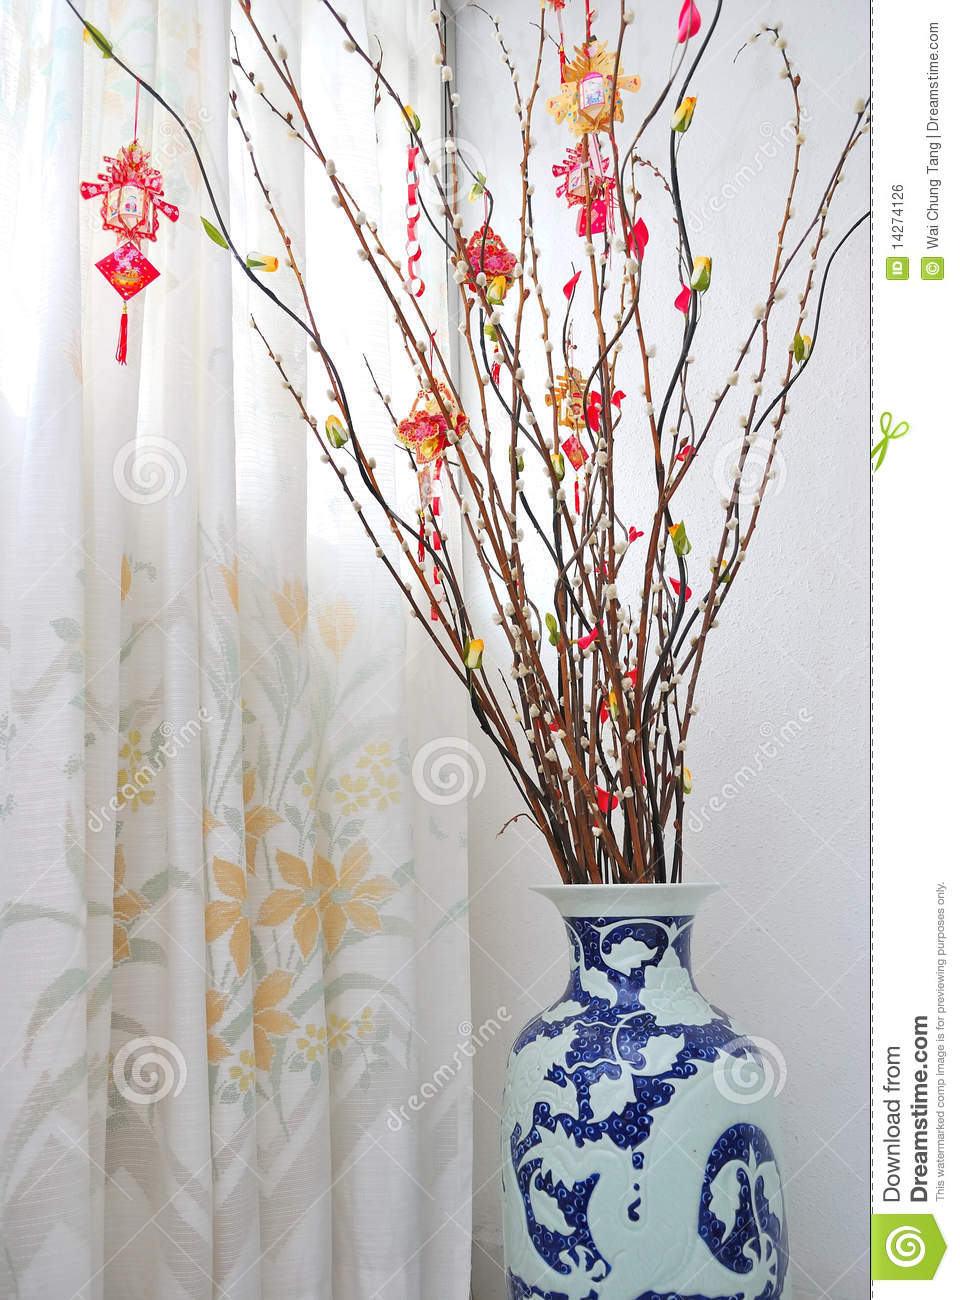 Chinese Lunar New Year Tree Decoration Royalty Free Stock